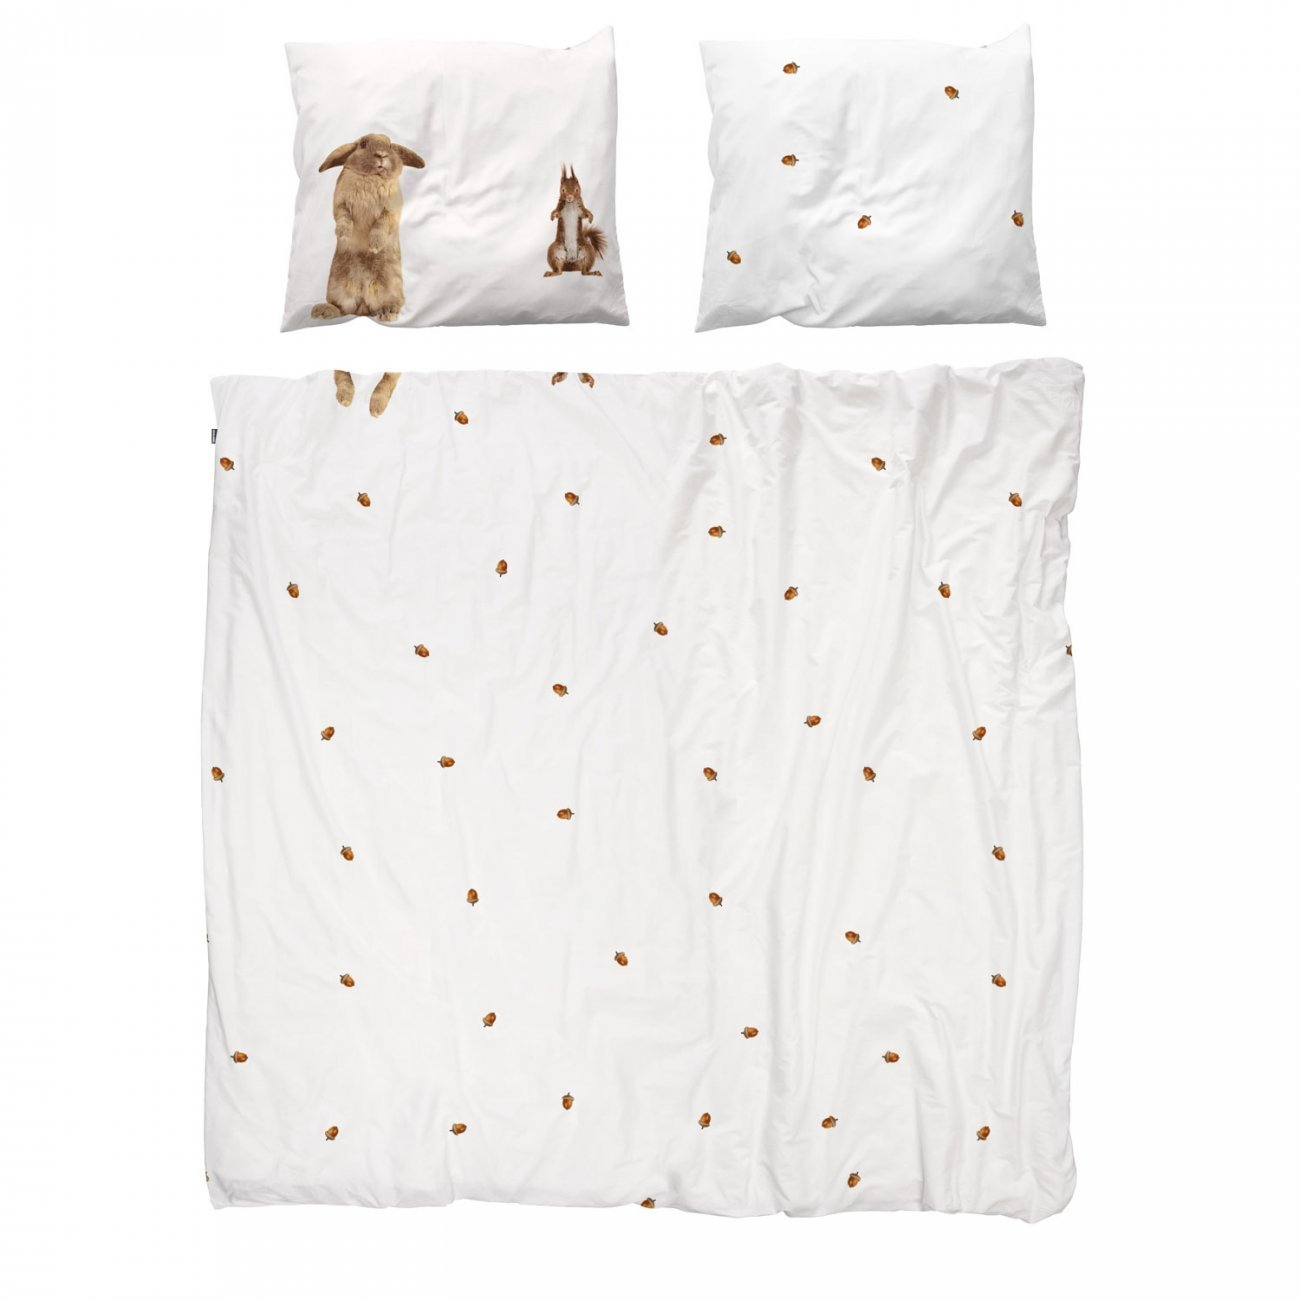 Furry Friends duvet cover